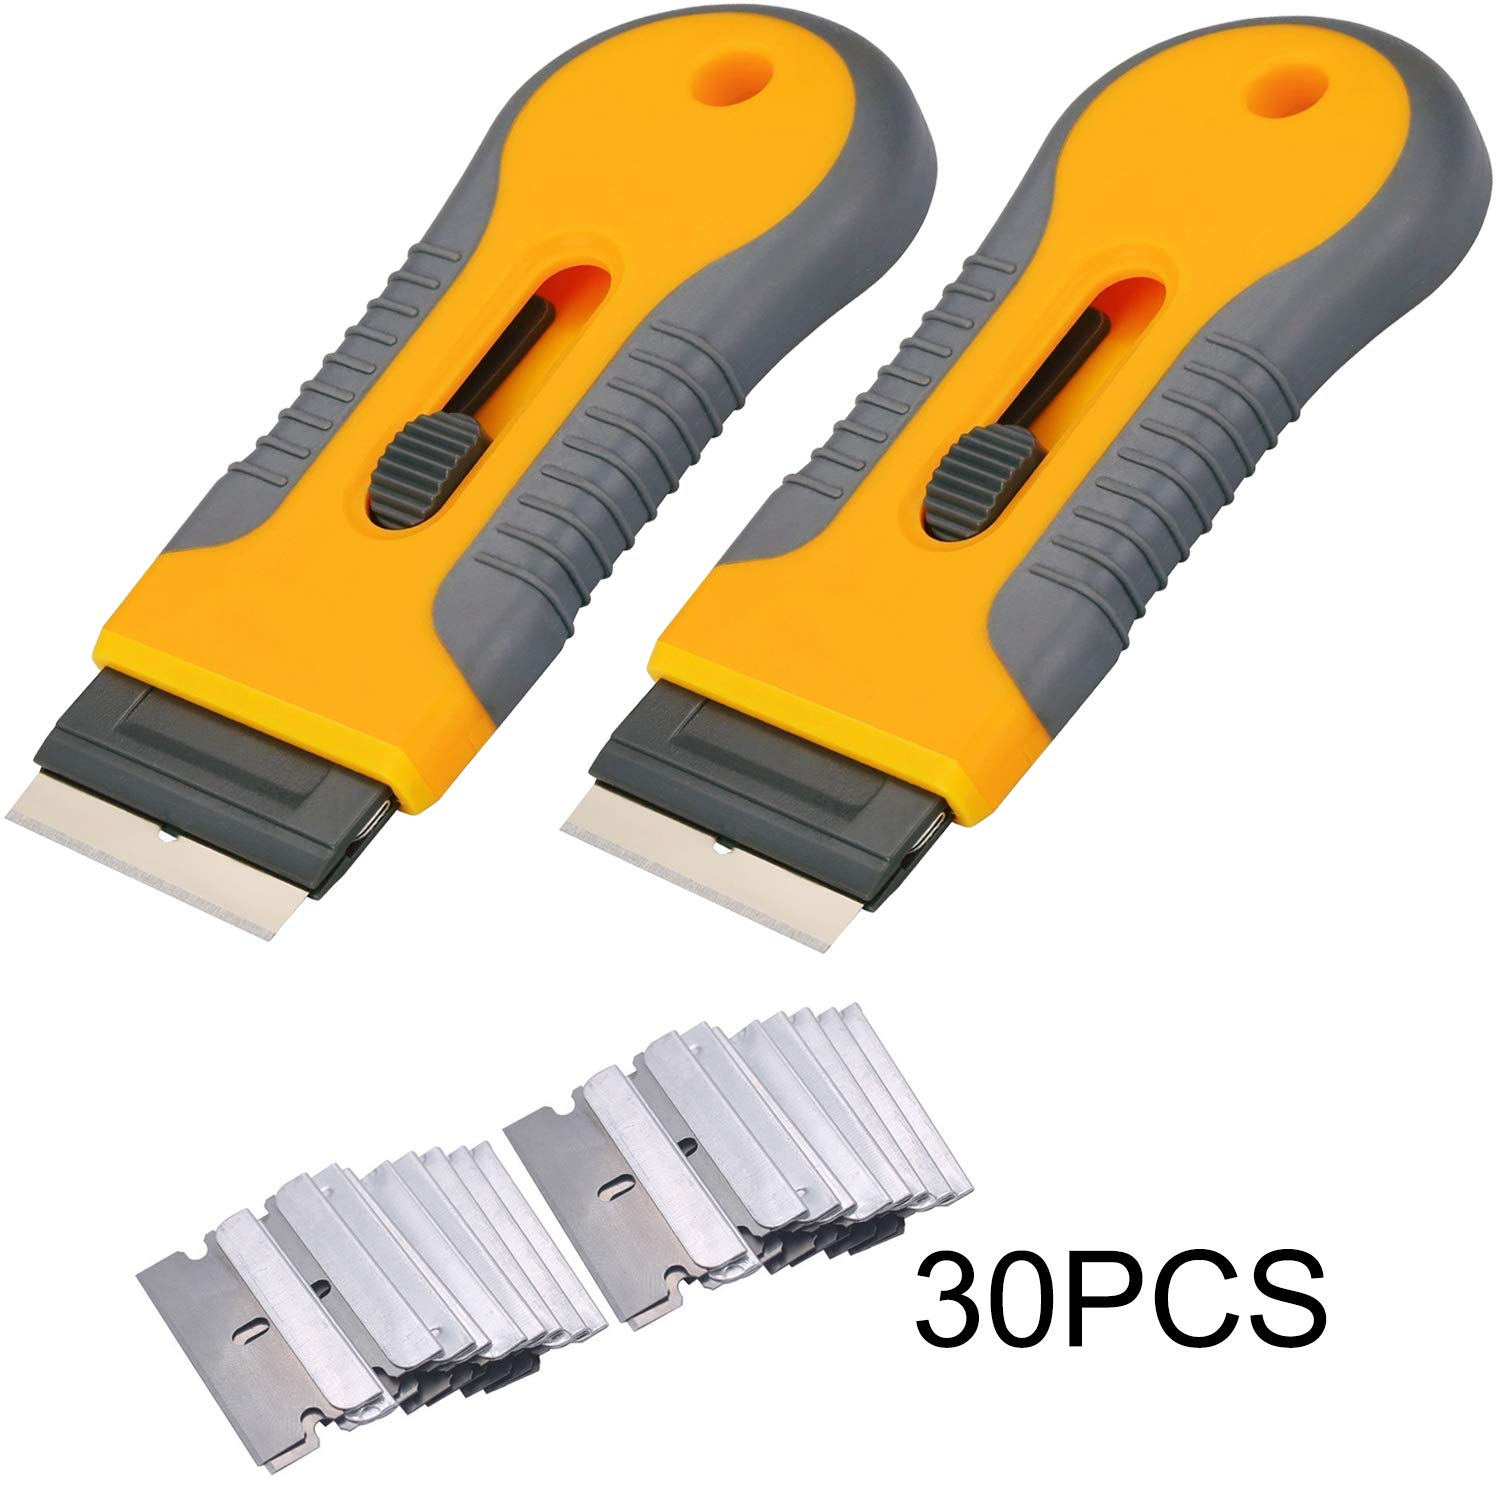 2pcs Razor Blade Scraper Tool Glass Ceramic Metal Scraper - Sticker Glue Paint Adhesive Decal Scraper+30pcs Carbon Steel Blades